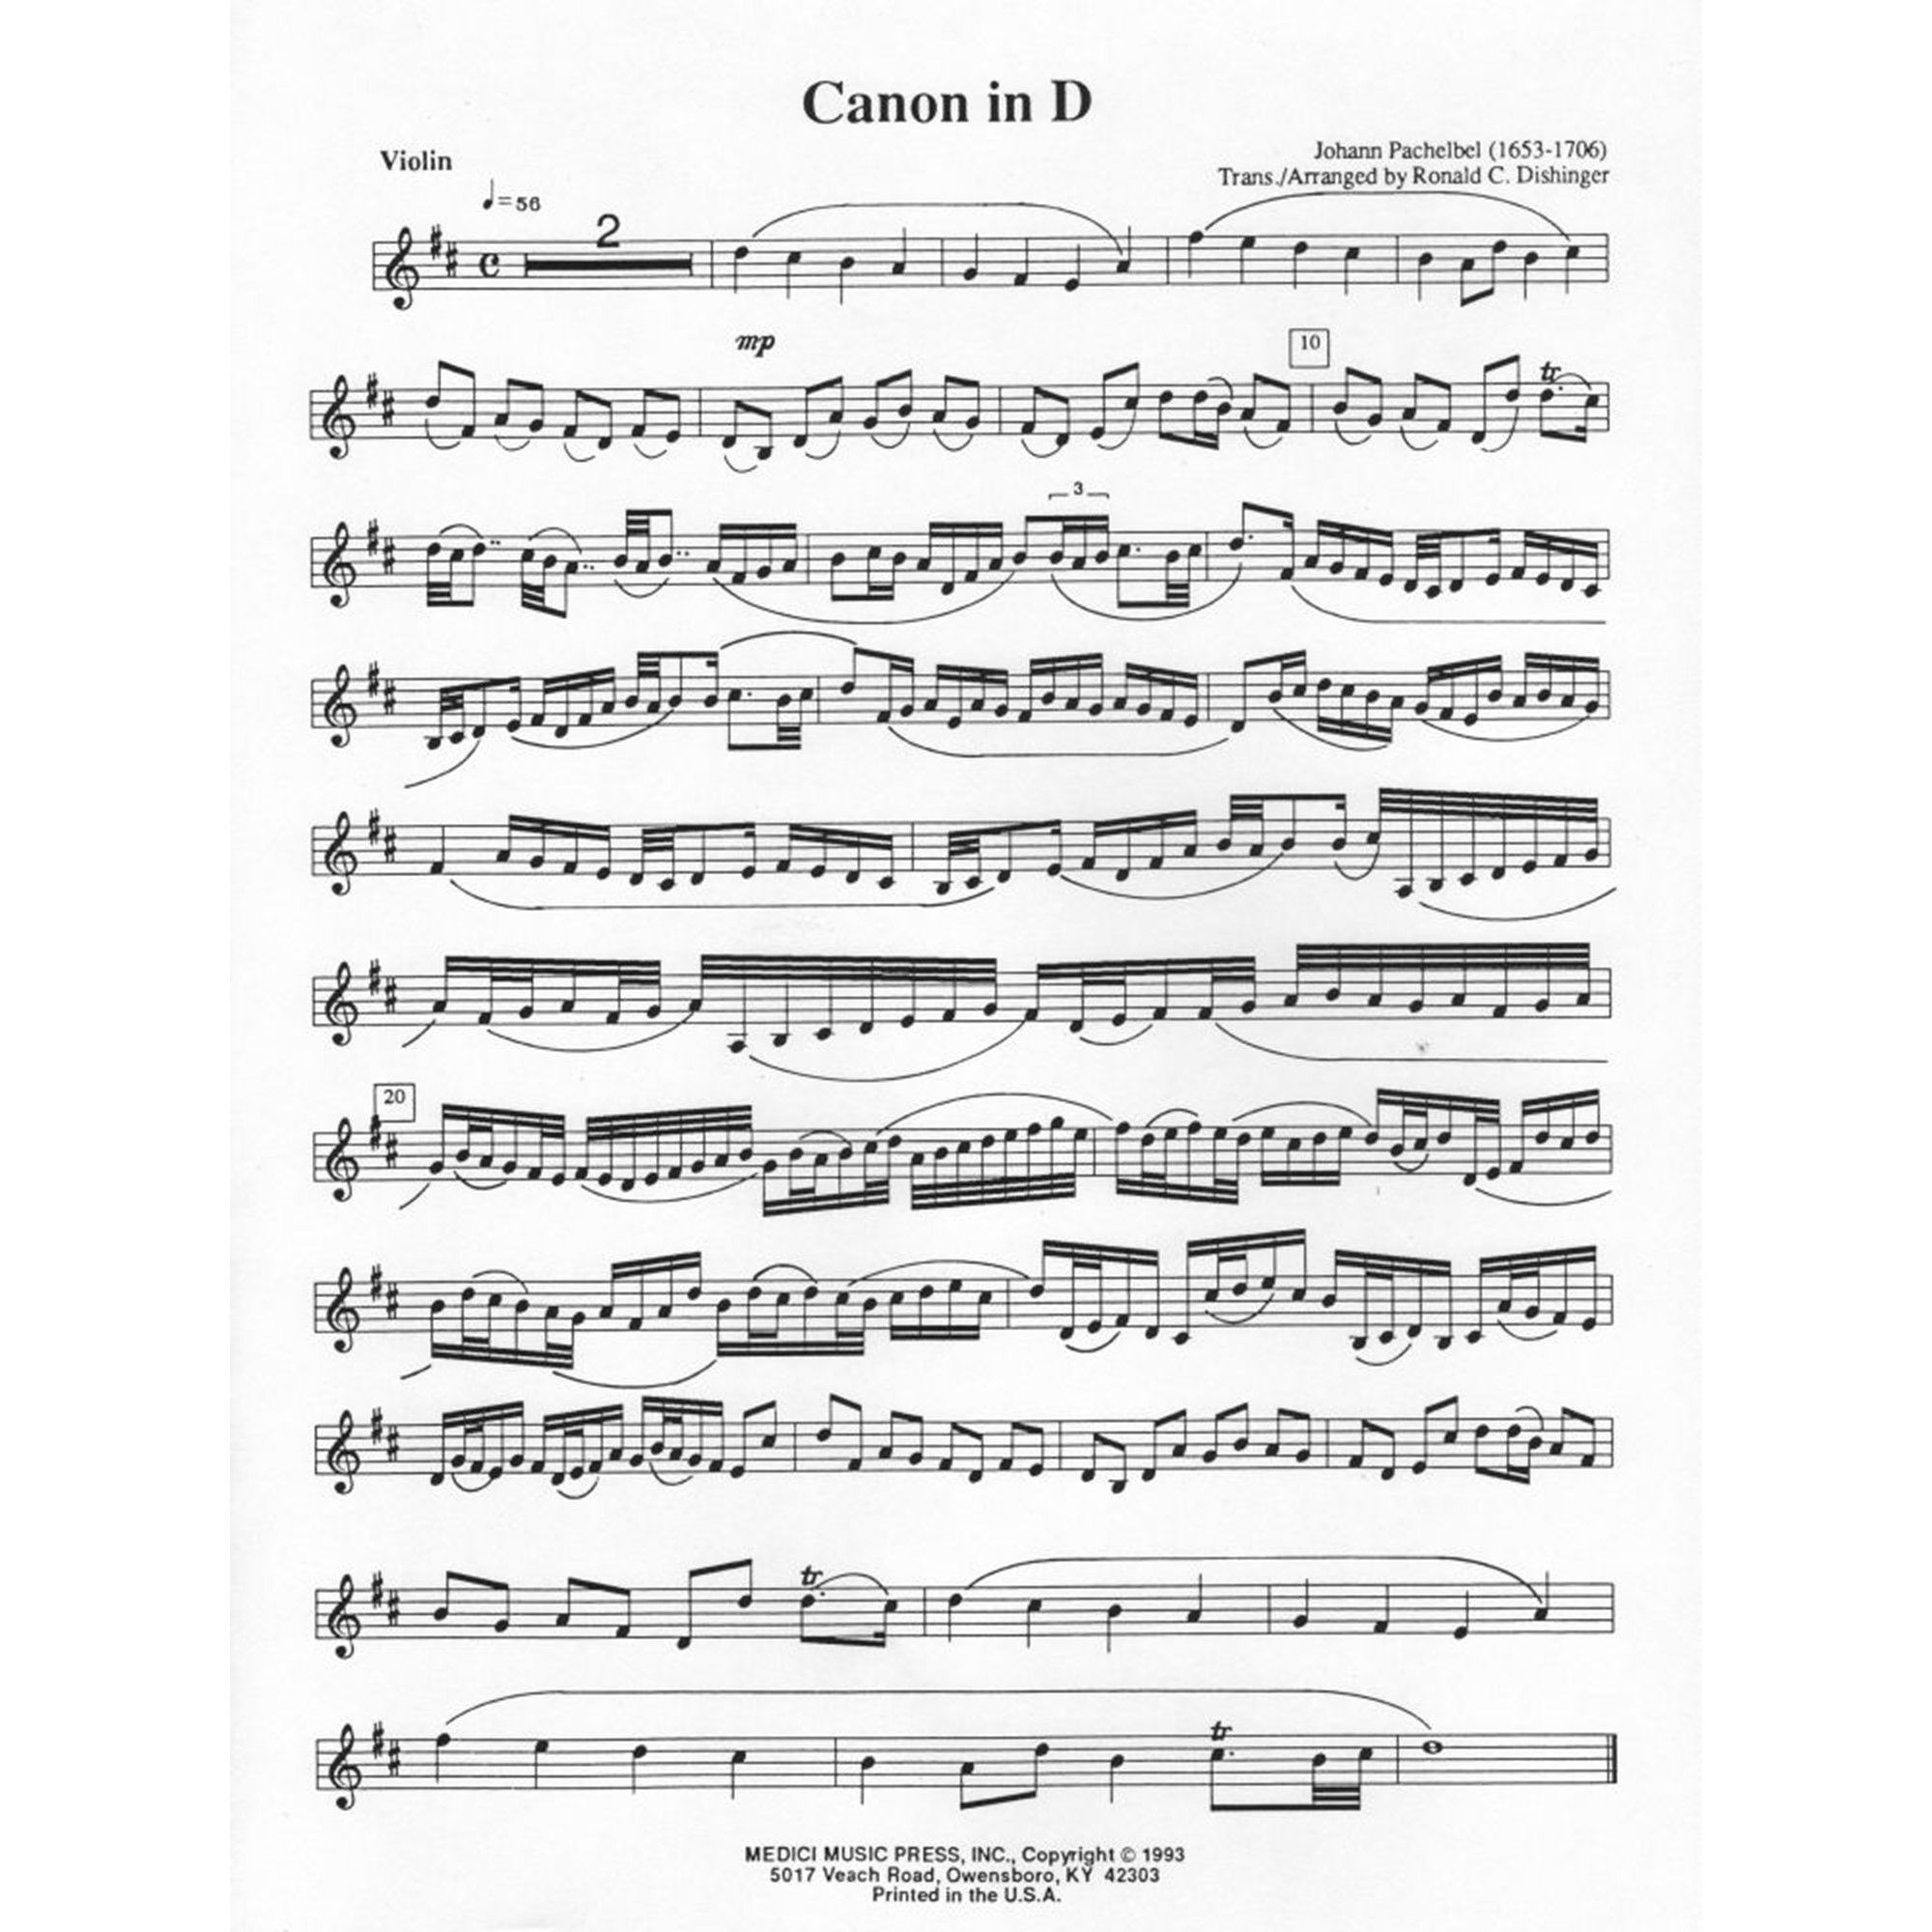 Canon In D And Violin Sheet Music Easy 50 Pachelbel Johann Canon In D For Violin And Piano Easy Violin Sheet Music Sheet Music Violin Sheet Music 12 stave manuscript paper pdf